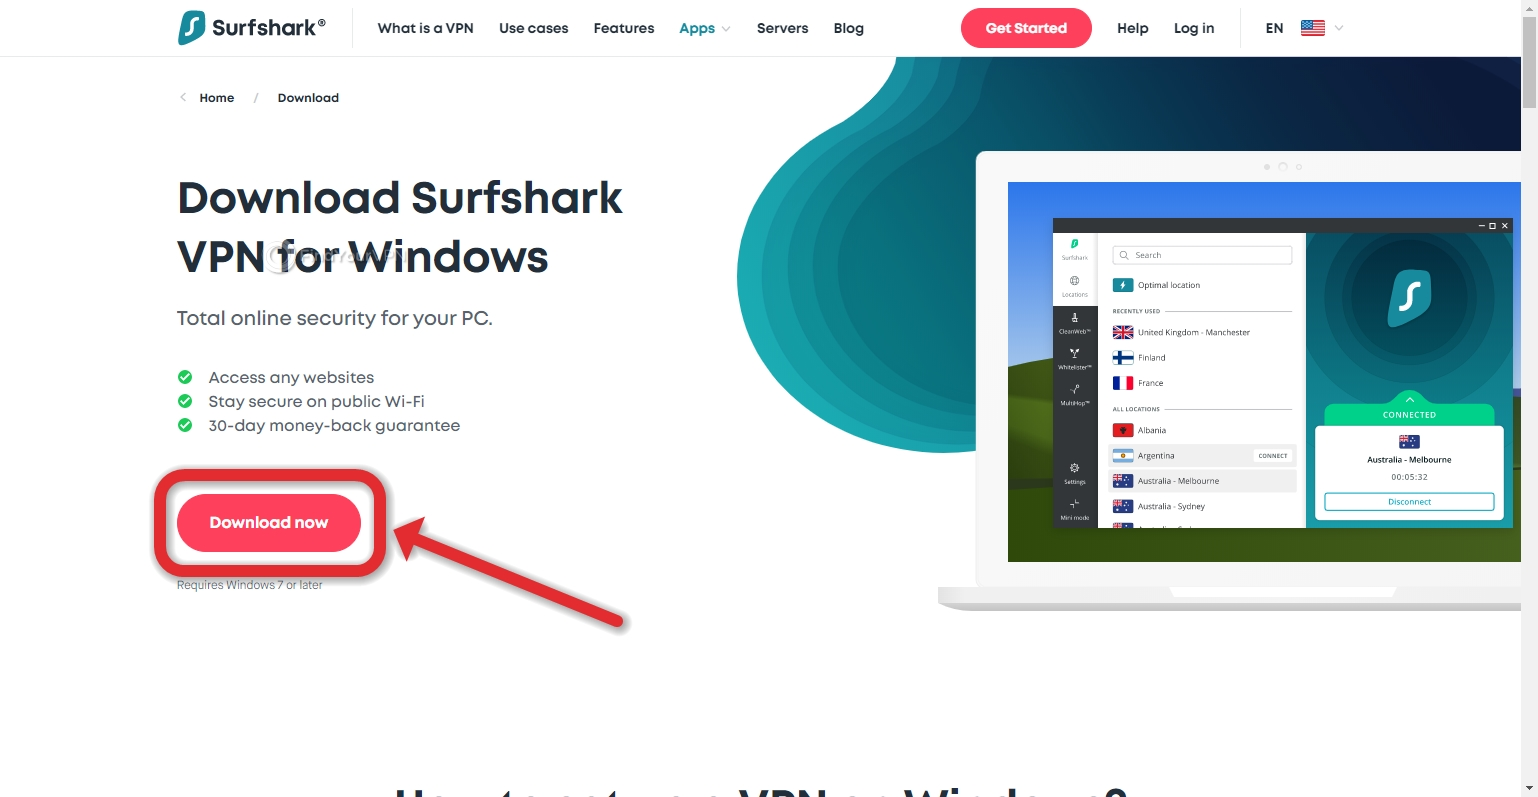 How to download Surfshark for Windows